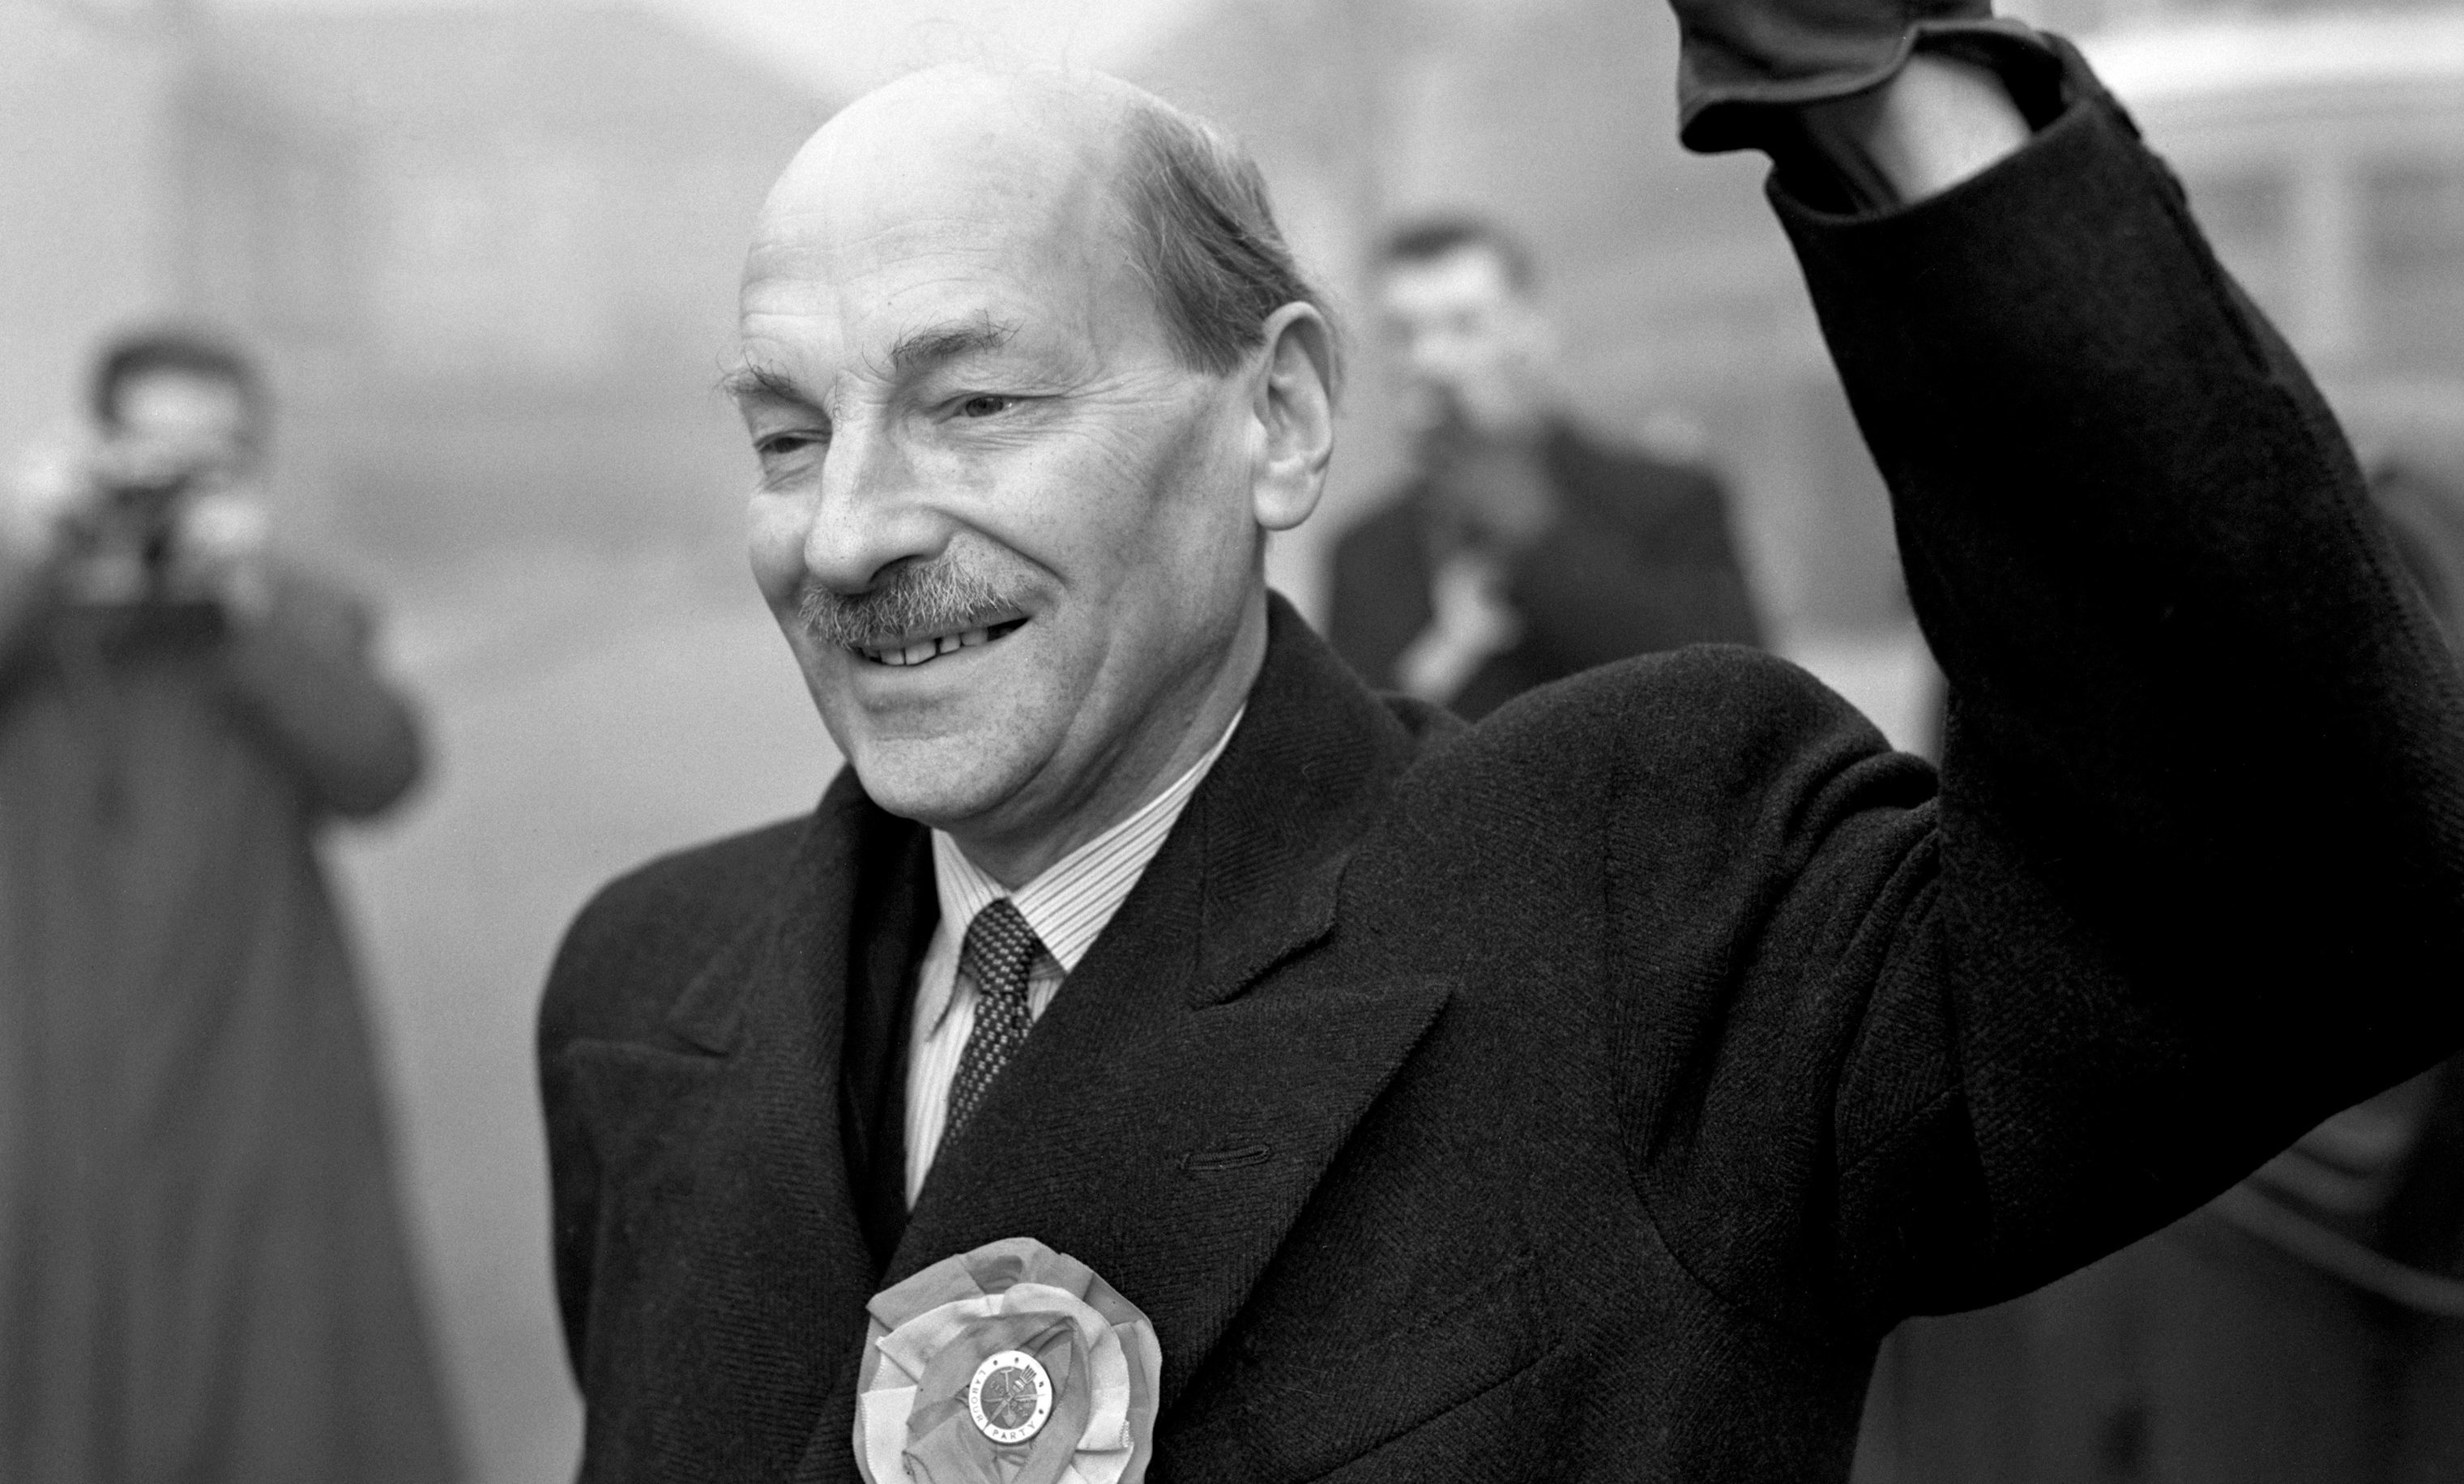 John Macdonald is a great nephew of former Labour Prime Minister Clement Attlee.